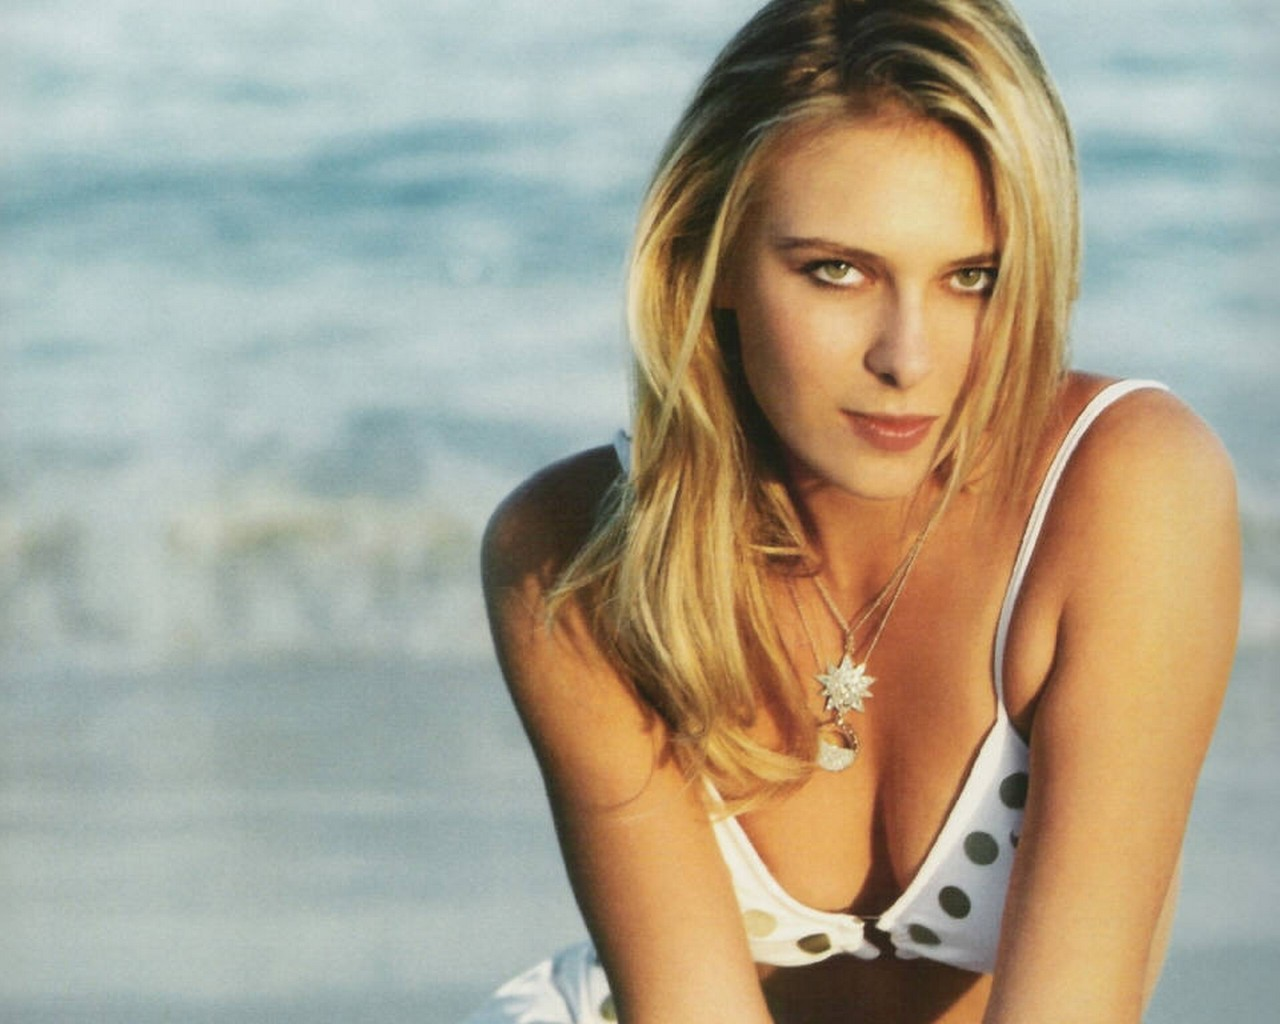 Maria Sharapova Off Court Pictures And Photoshoots Part 1